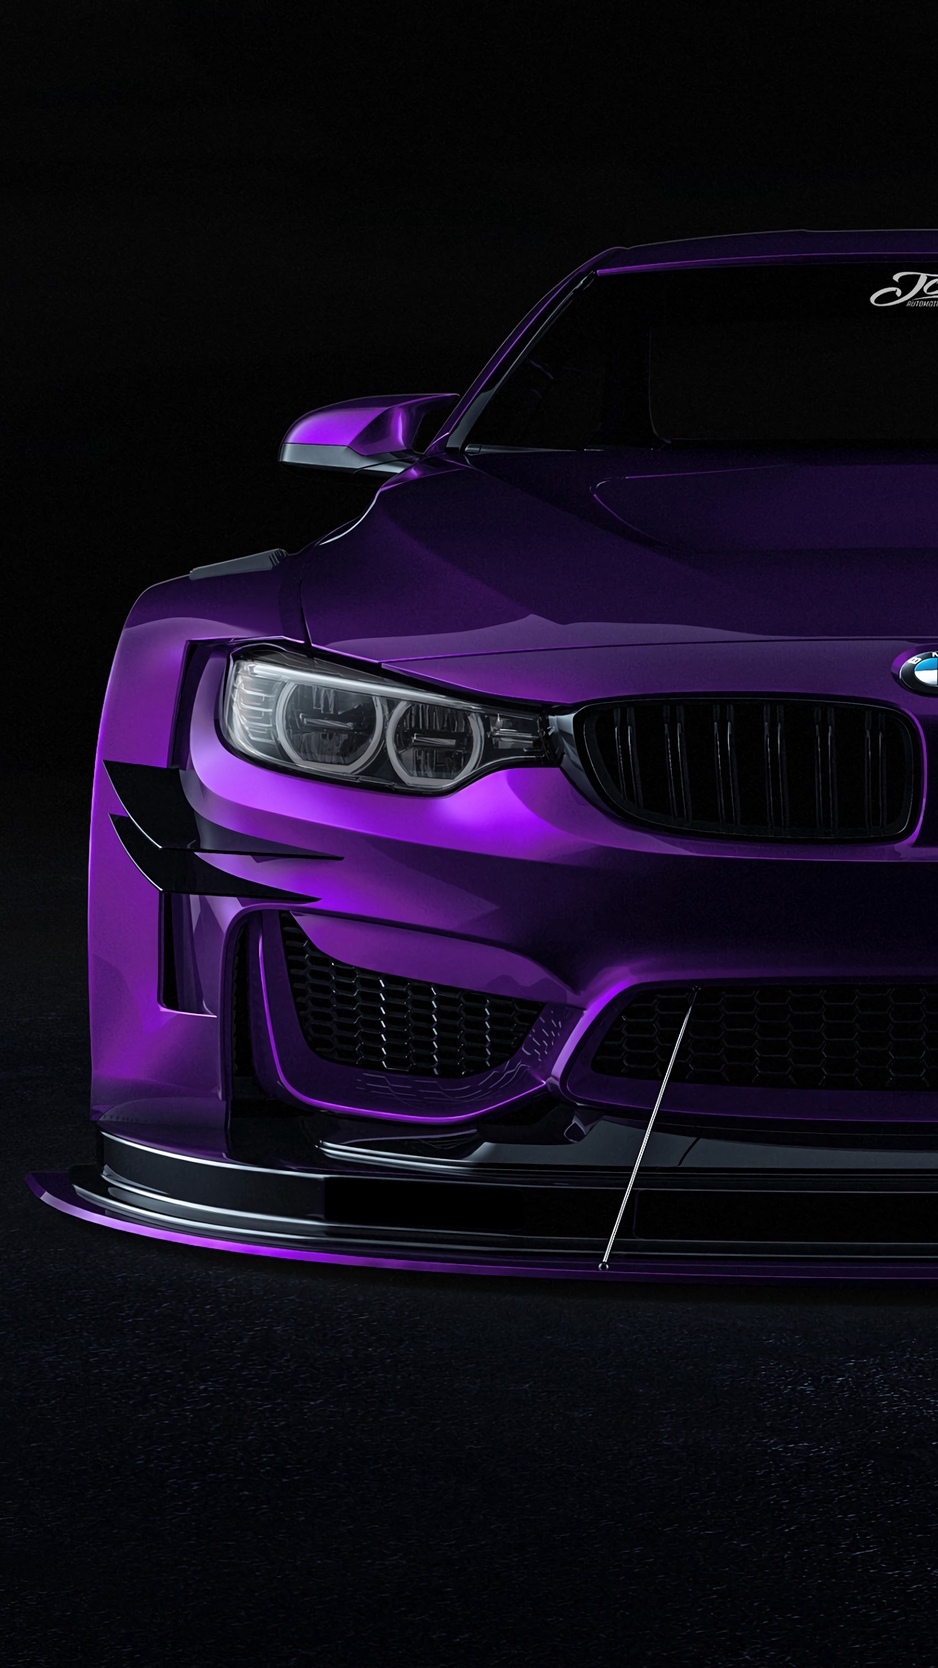 Wallpaper Bmw Car Sportscar Purple Front View Bmw Desktop 938x1668 Wallpaper Teahub Io